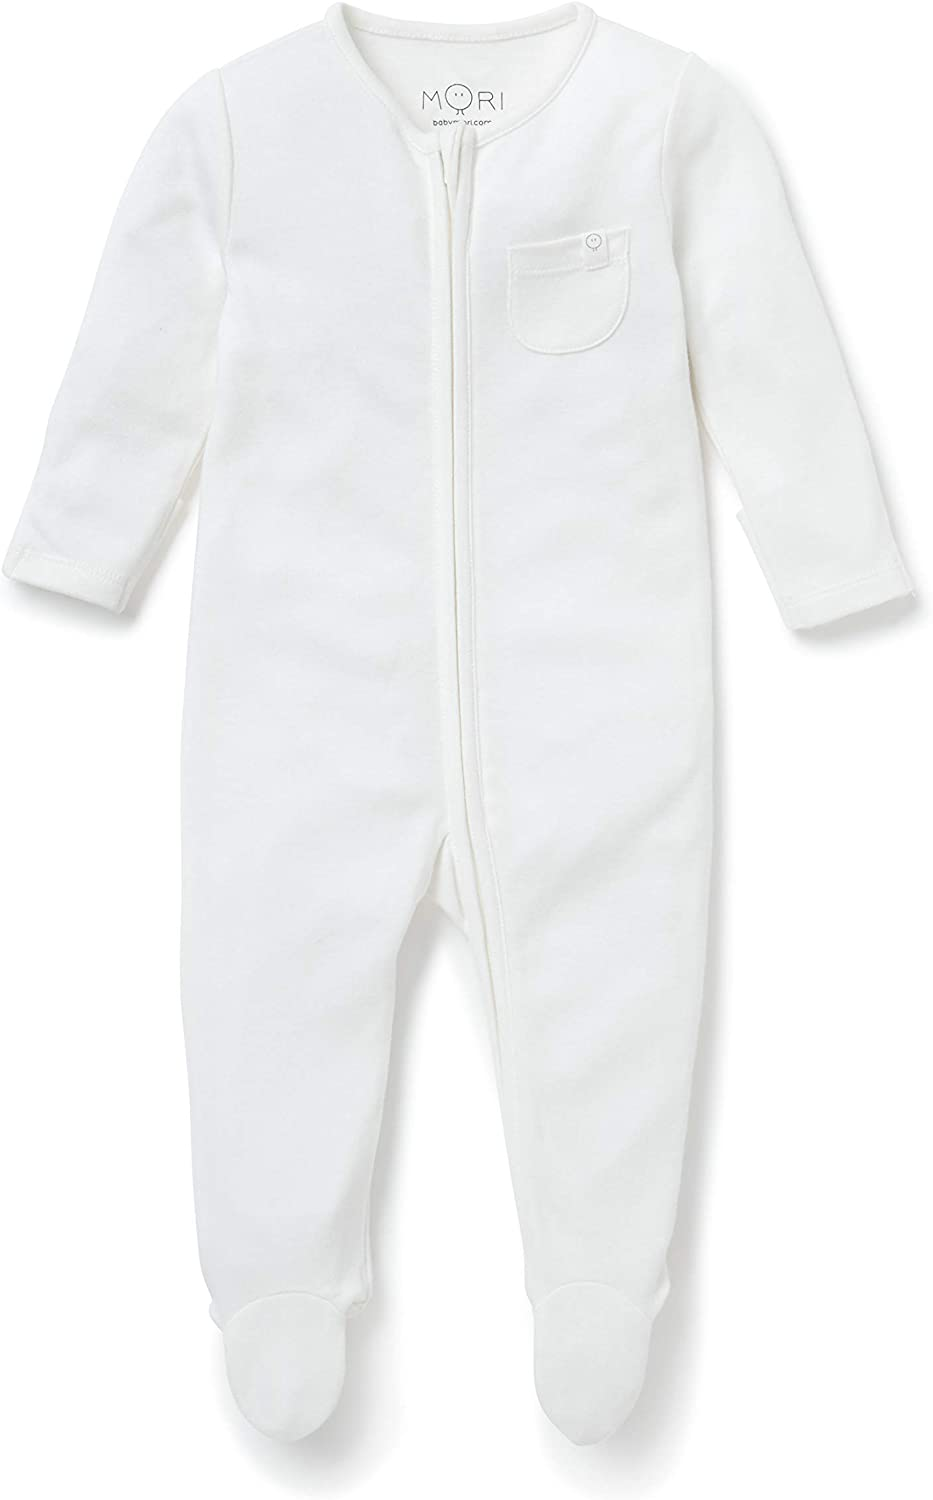 Available from Newborn up to 9 Months 0-3 M, Grey MORI Zip-Up Sleep /& Play One Piece 30/% Organic Cotton /& 70/% Bamboo from Viscose